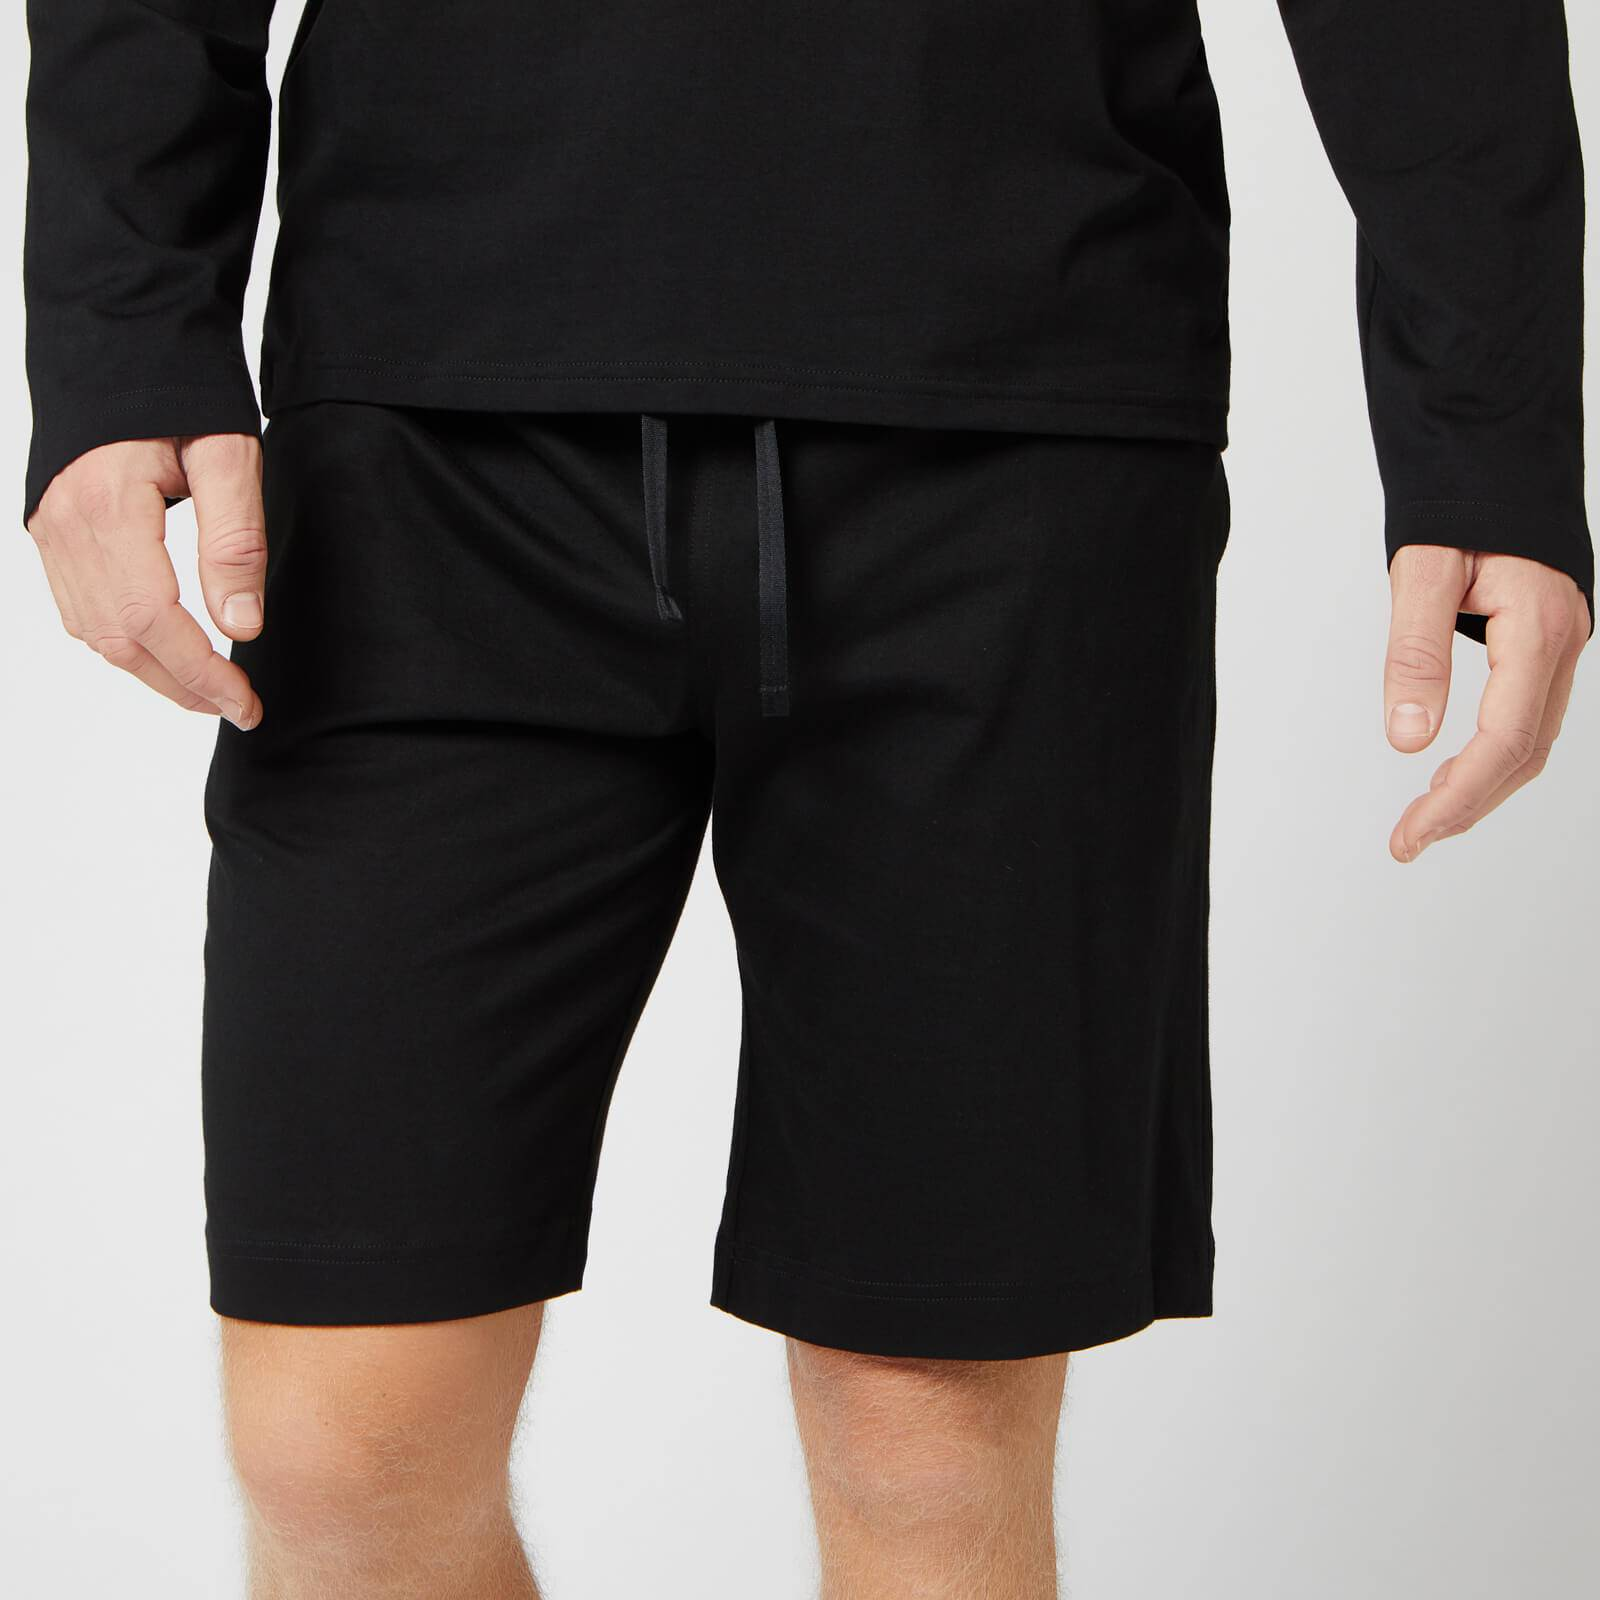 Ralph Lauren Polo Ralph Lauren Men's Jogger Shorts - Polo Black - L